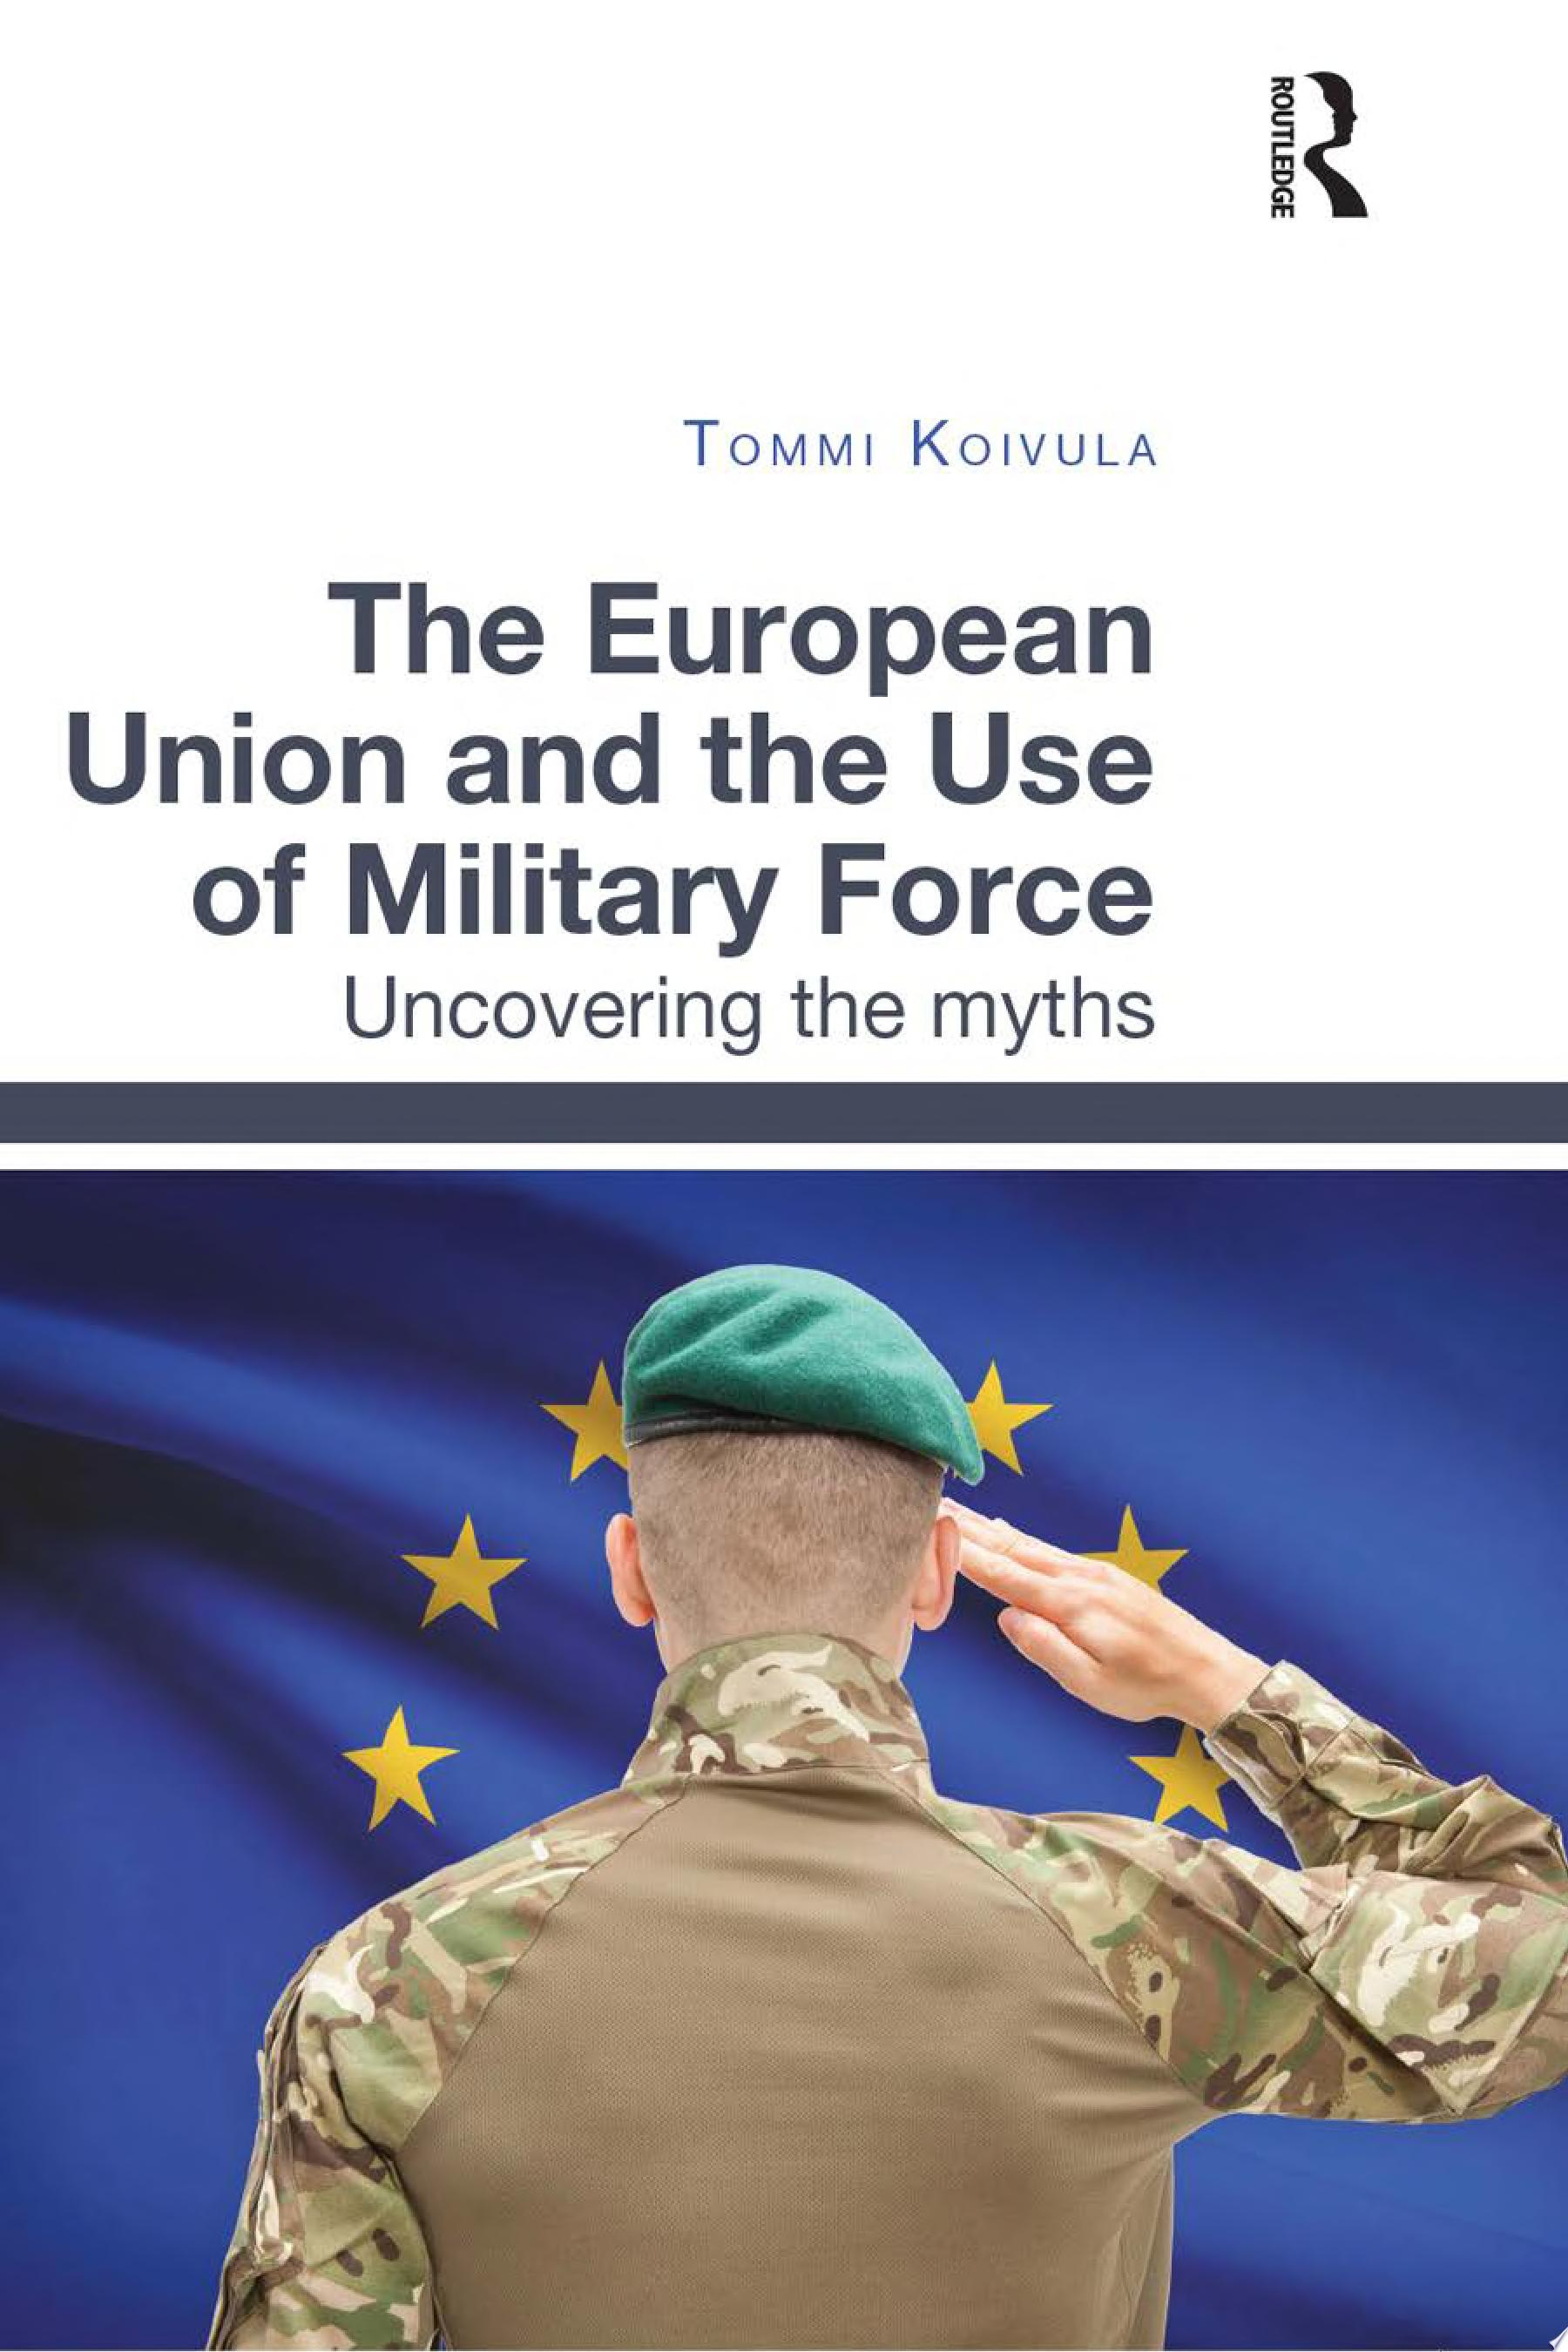 The European Union and the Use of Military Force